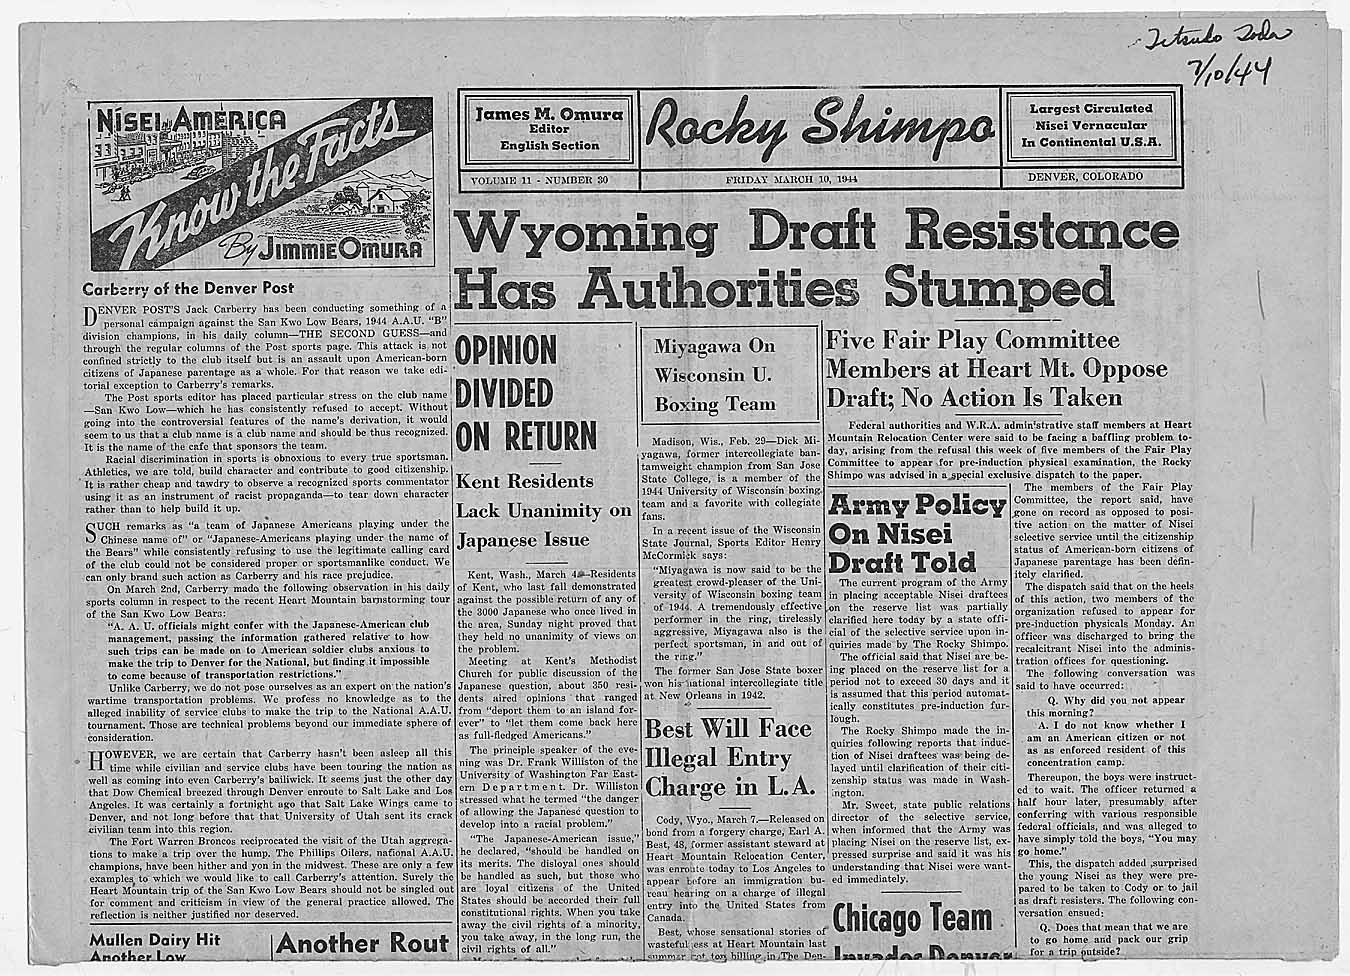 Newspaper article from rocky shimpo wyoming draft resistance has